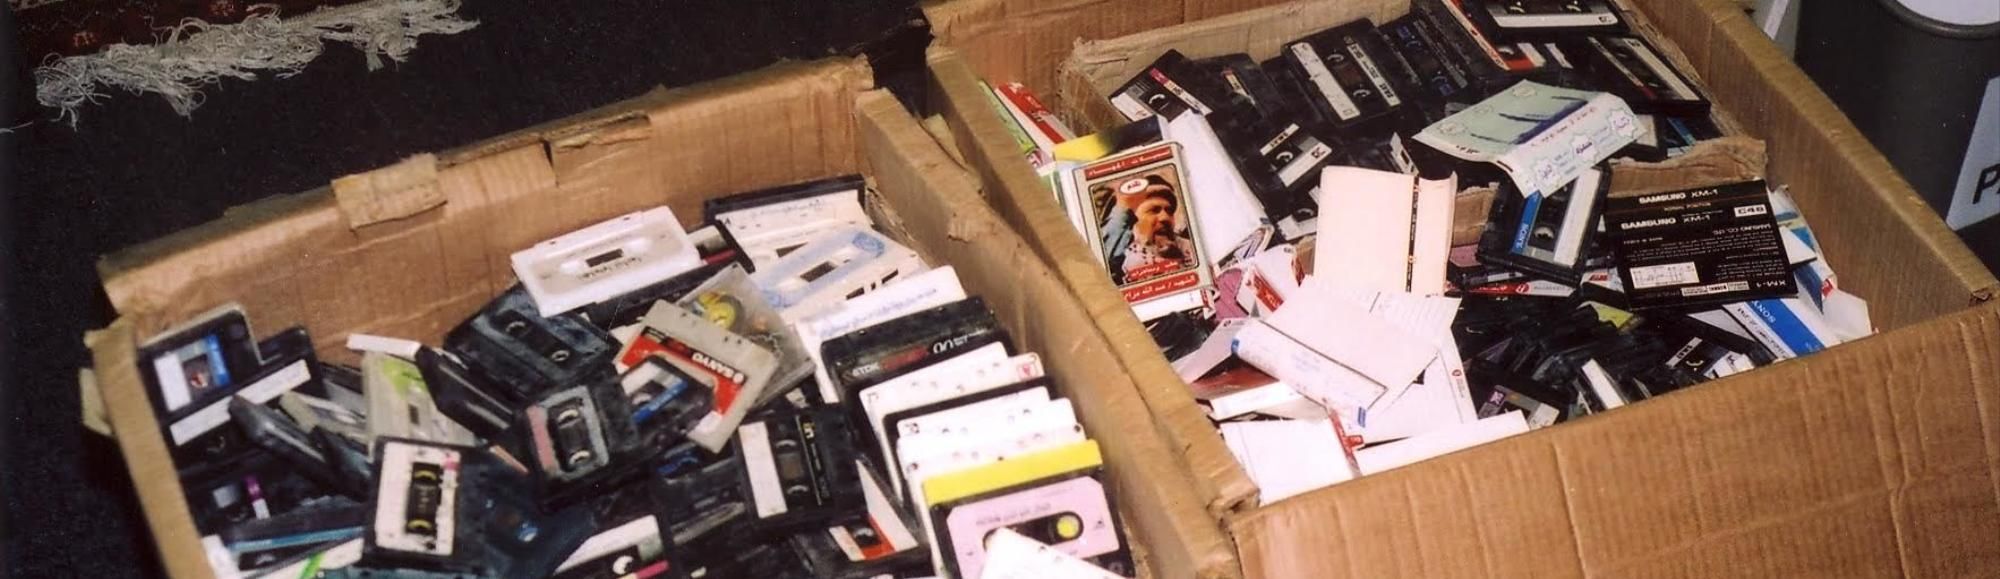 What I Learned About al Qaeda from Analyzing the 'Bin Laden' Tapes